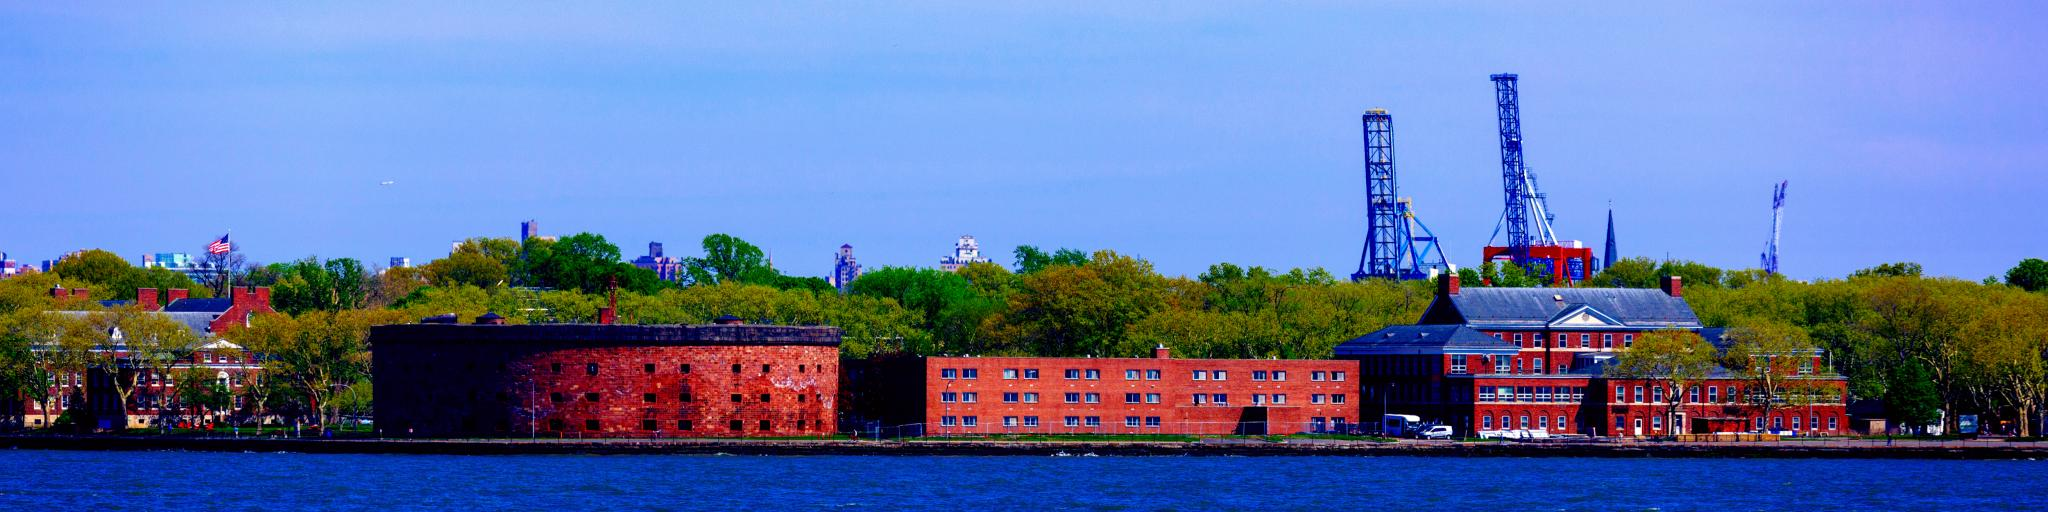 A worm's eye view of Castle Williams of General Island from New York Harbor with trees green trees and tower in the back on a sunny day